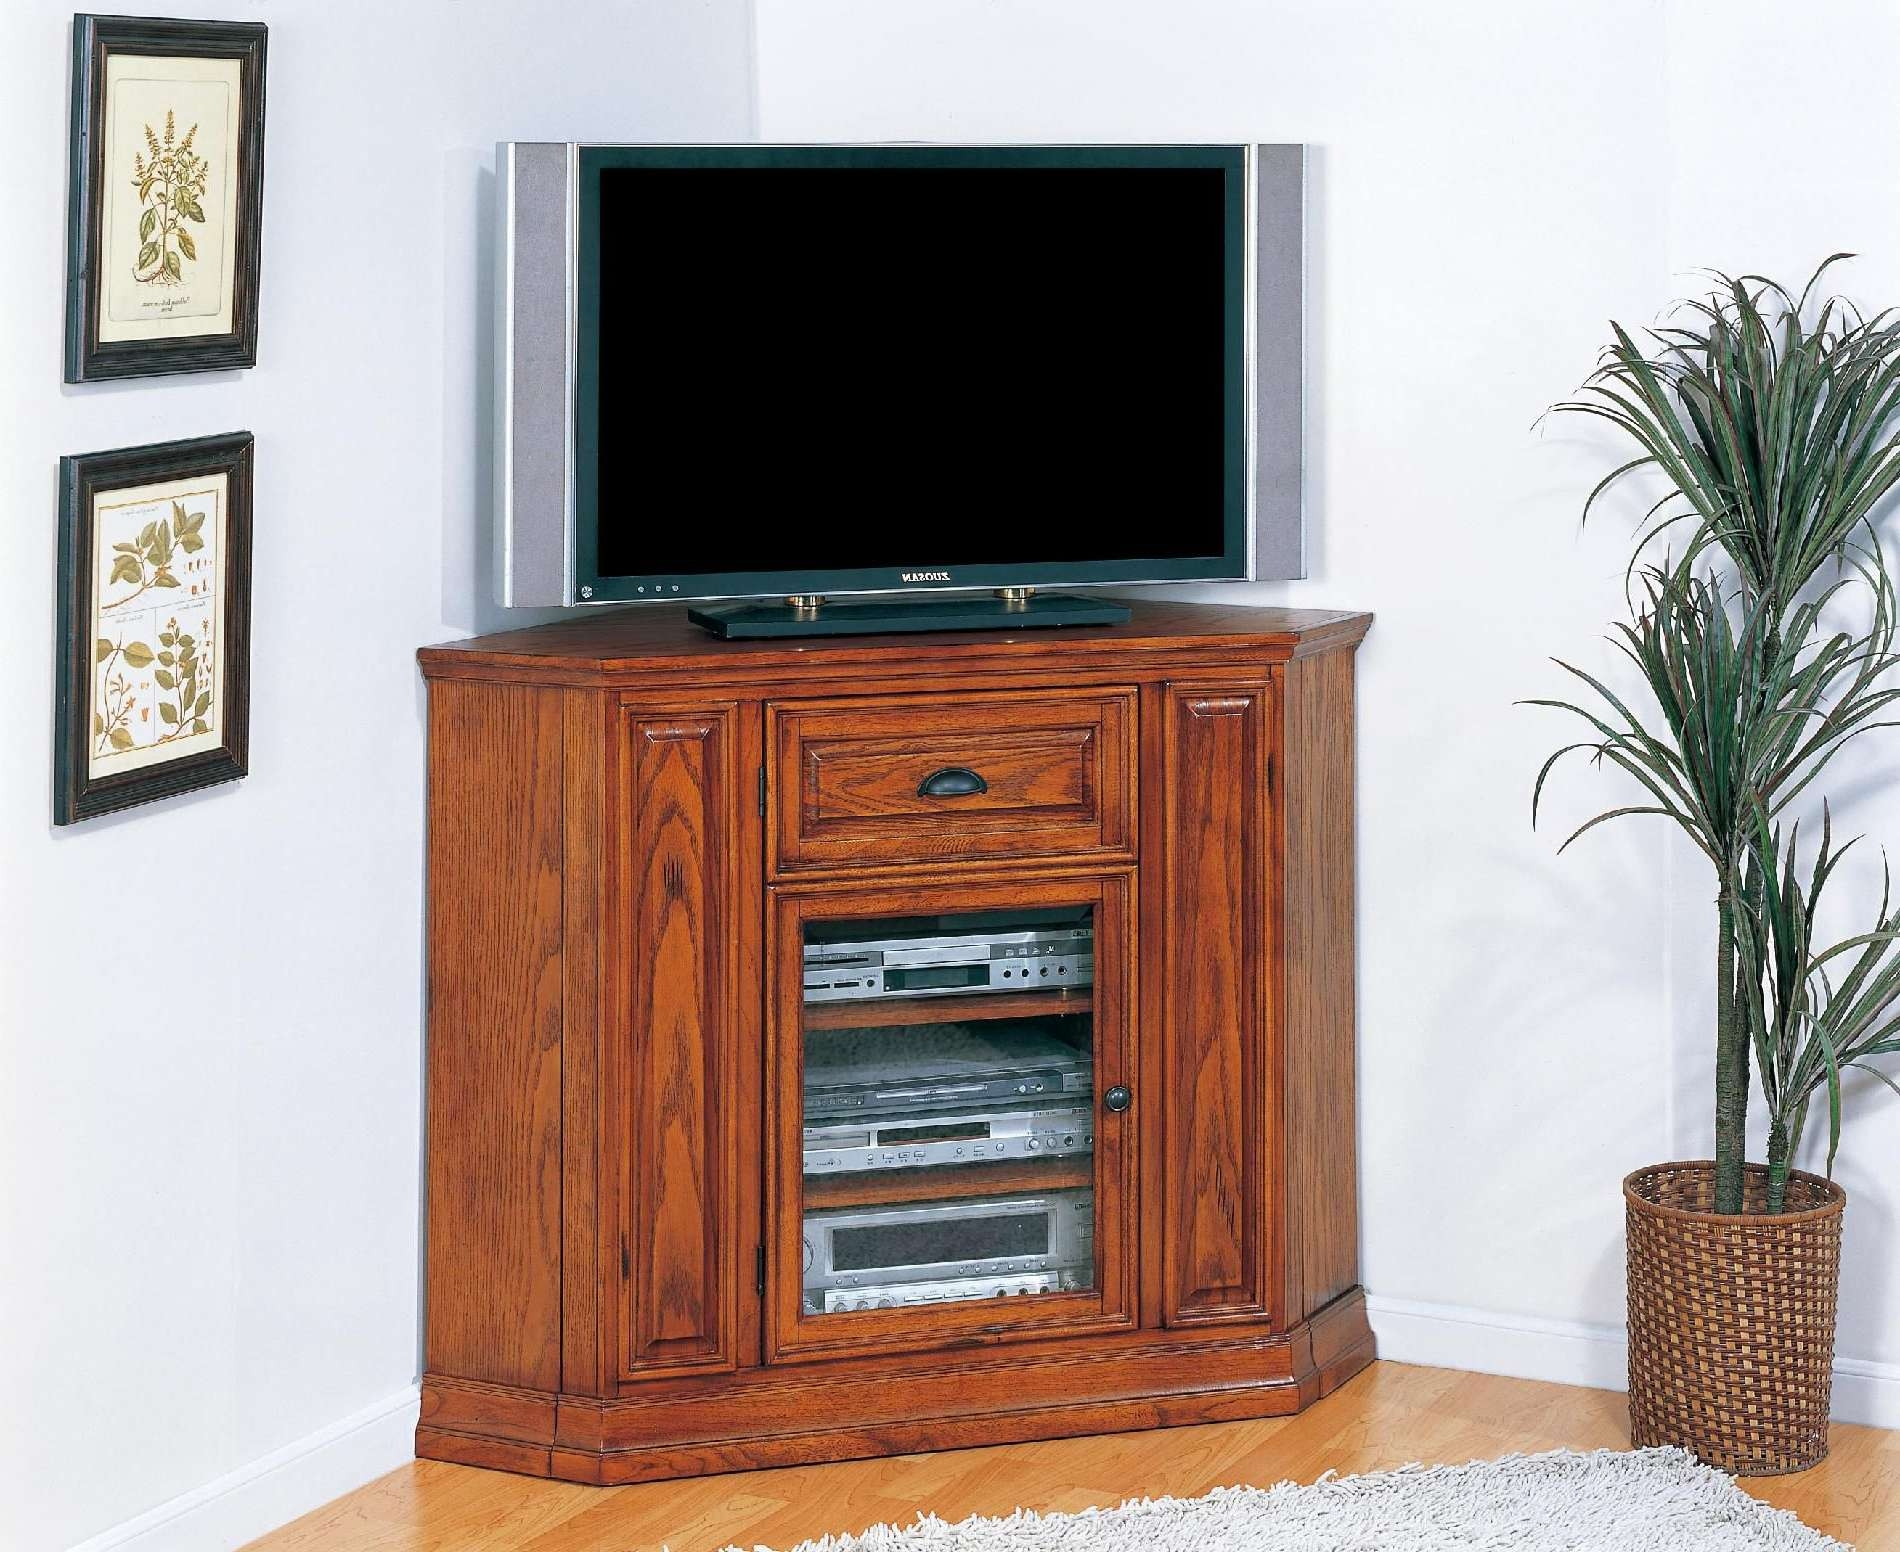 Tv Stand : Tall Narrow Tv Stands For Flat Screens And Standstall Throughout Corner Tv Stands With Drawers (View 14 of 15)